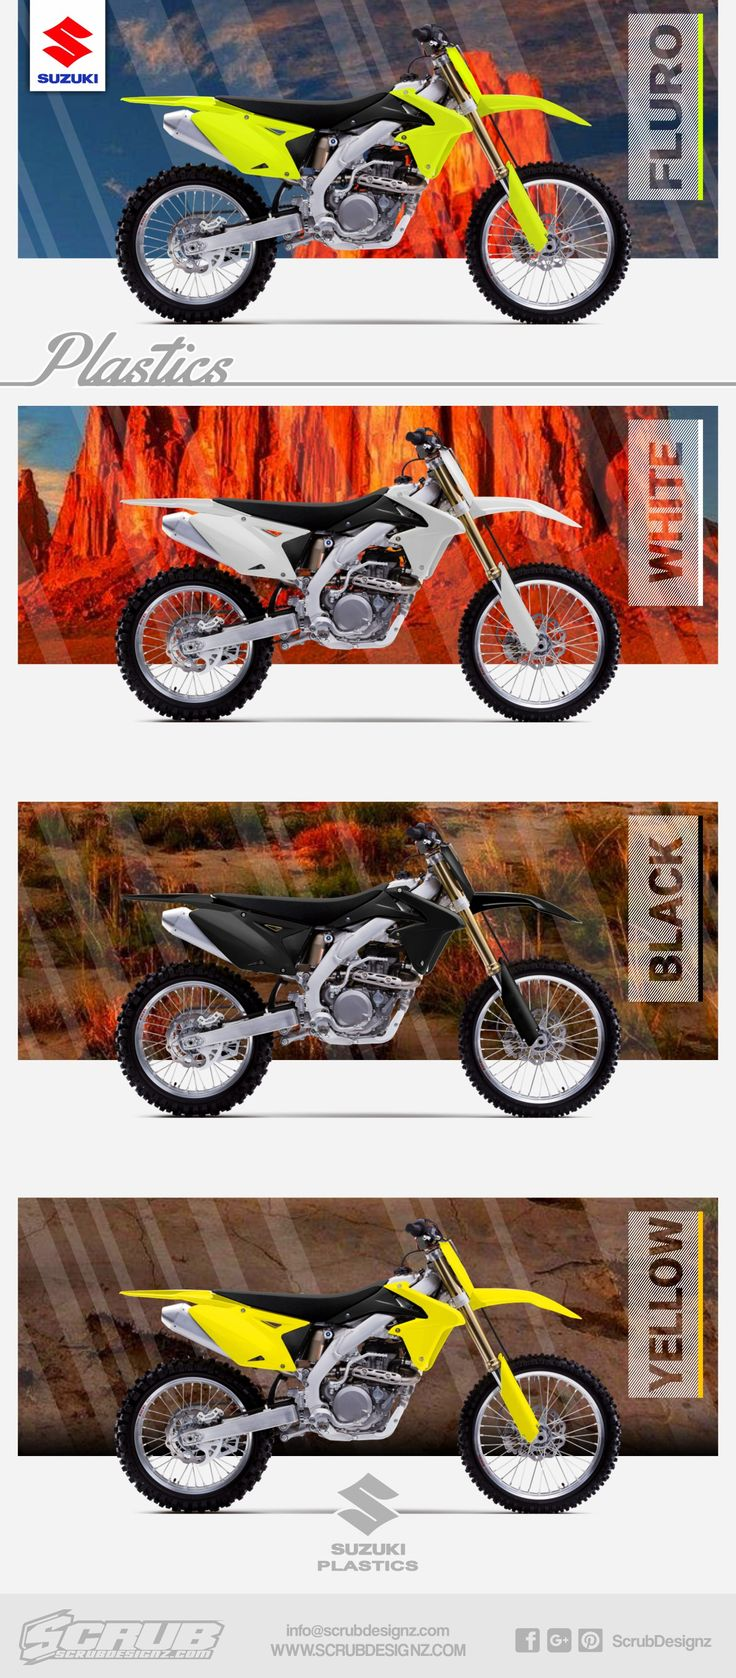 Dirt bike plastics for suzuki bikes any broken parts and scratches can be replaced with